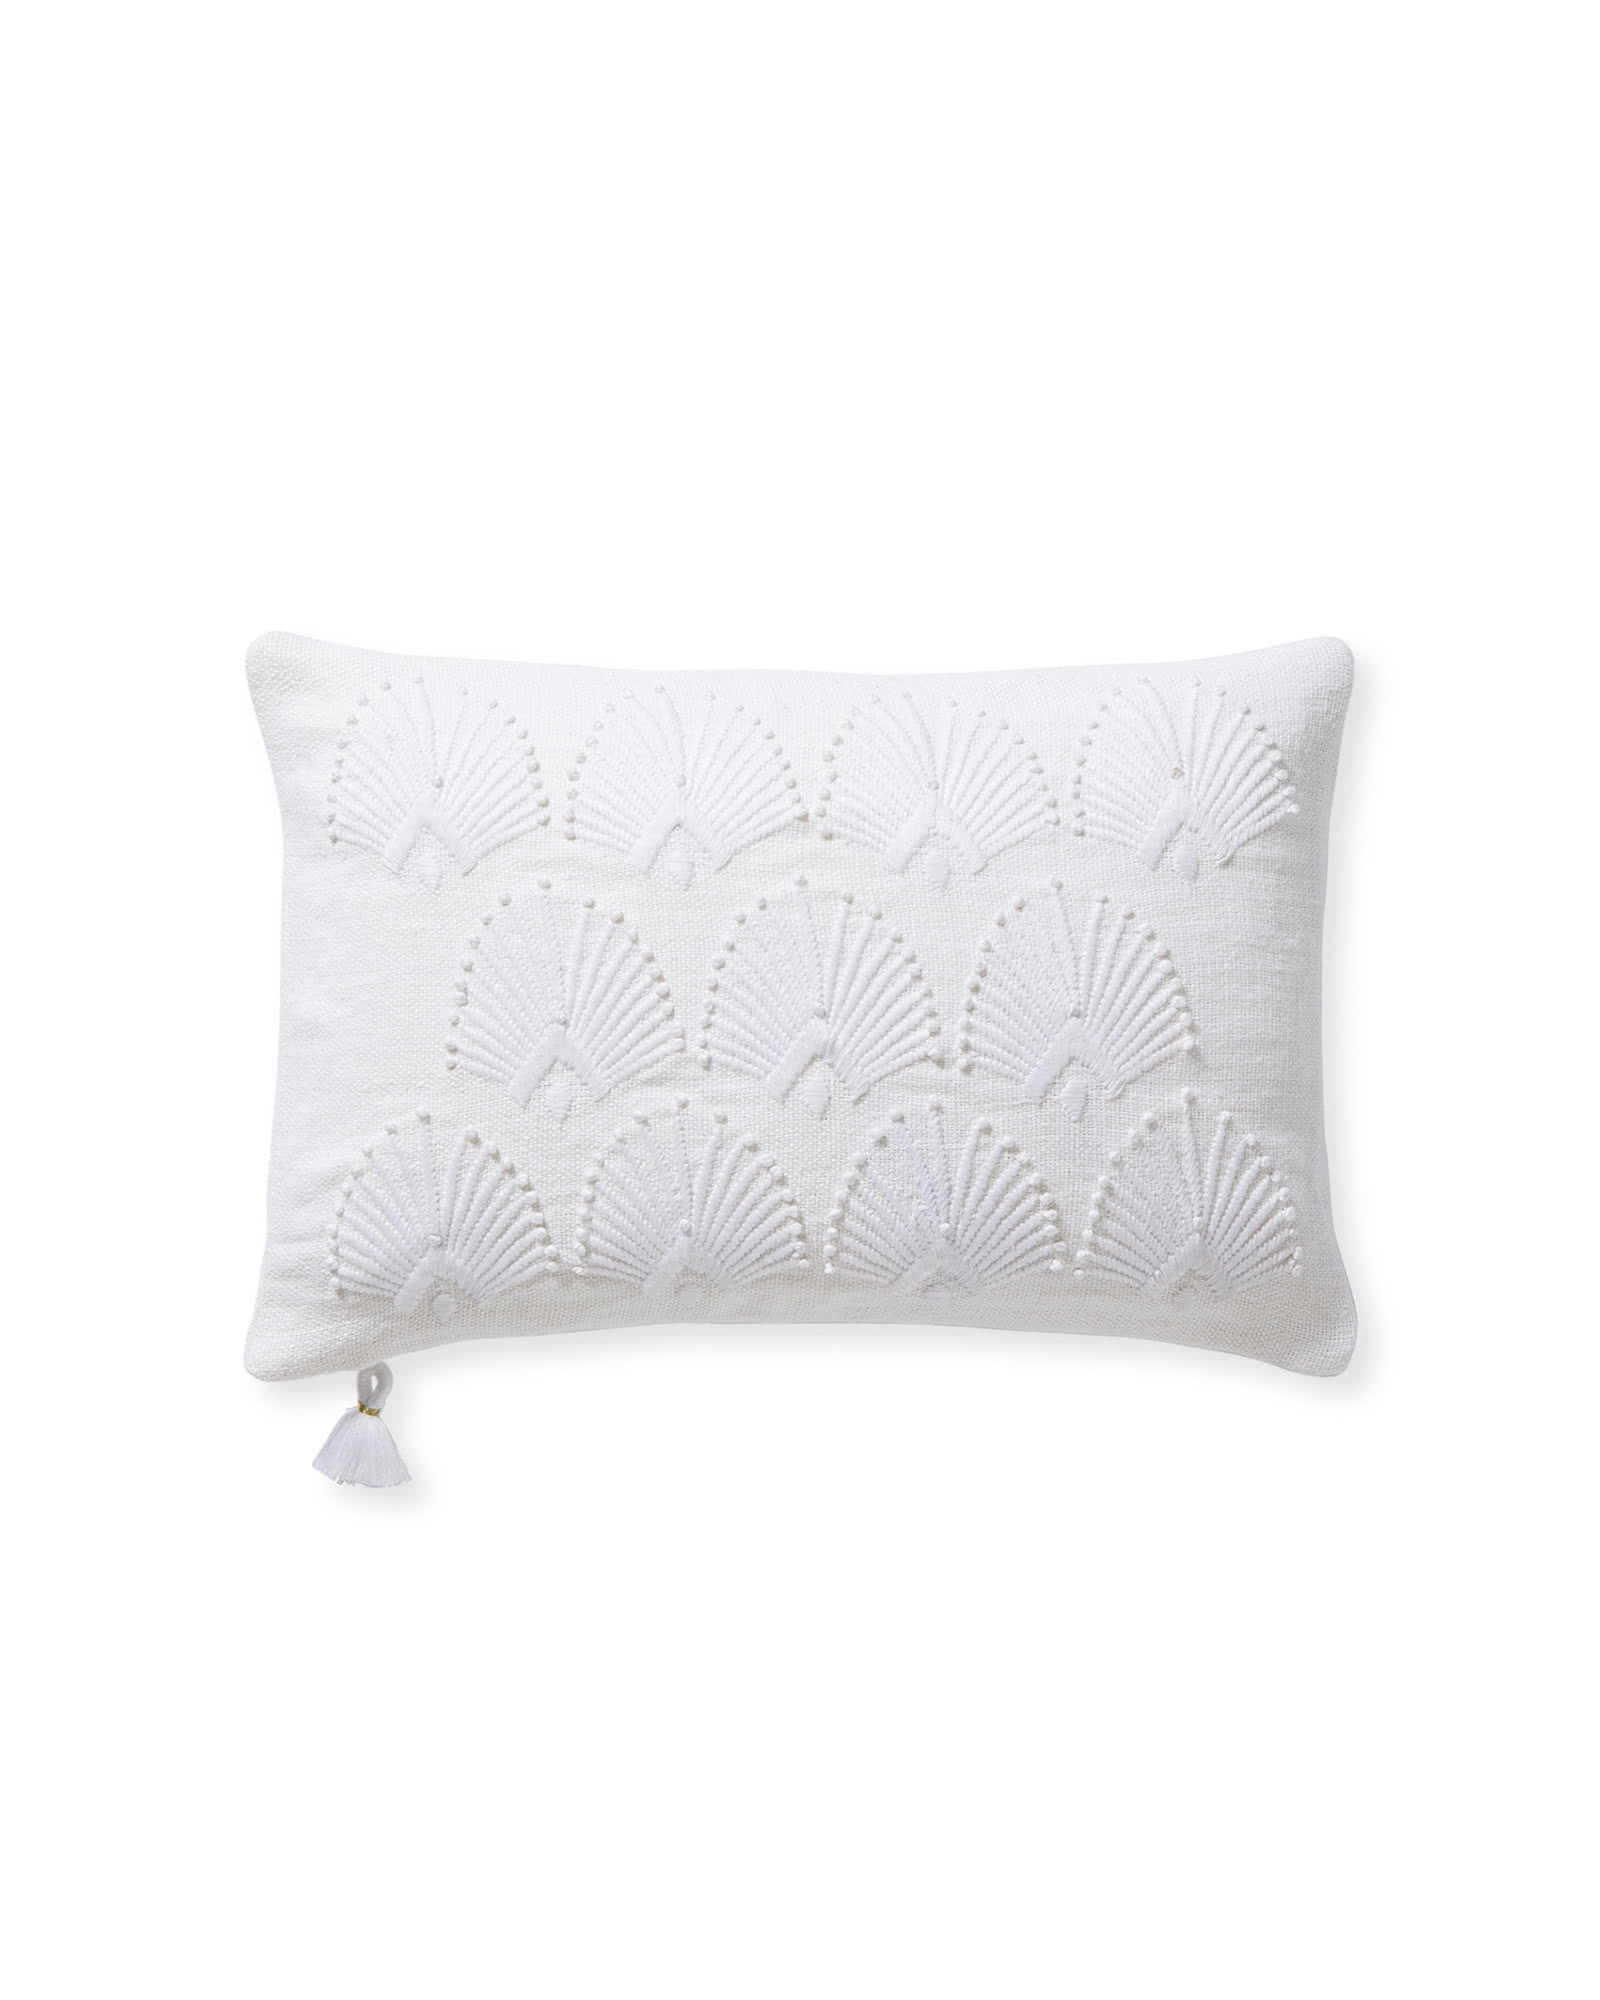 Monarch Pillow Cover - White,